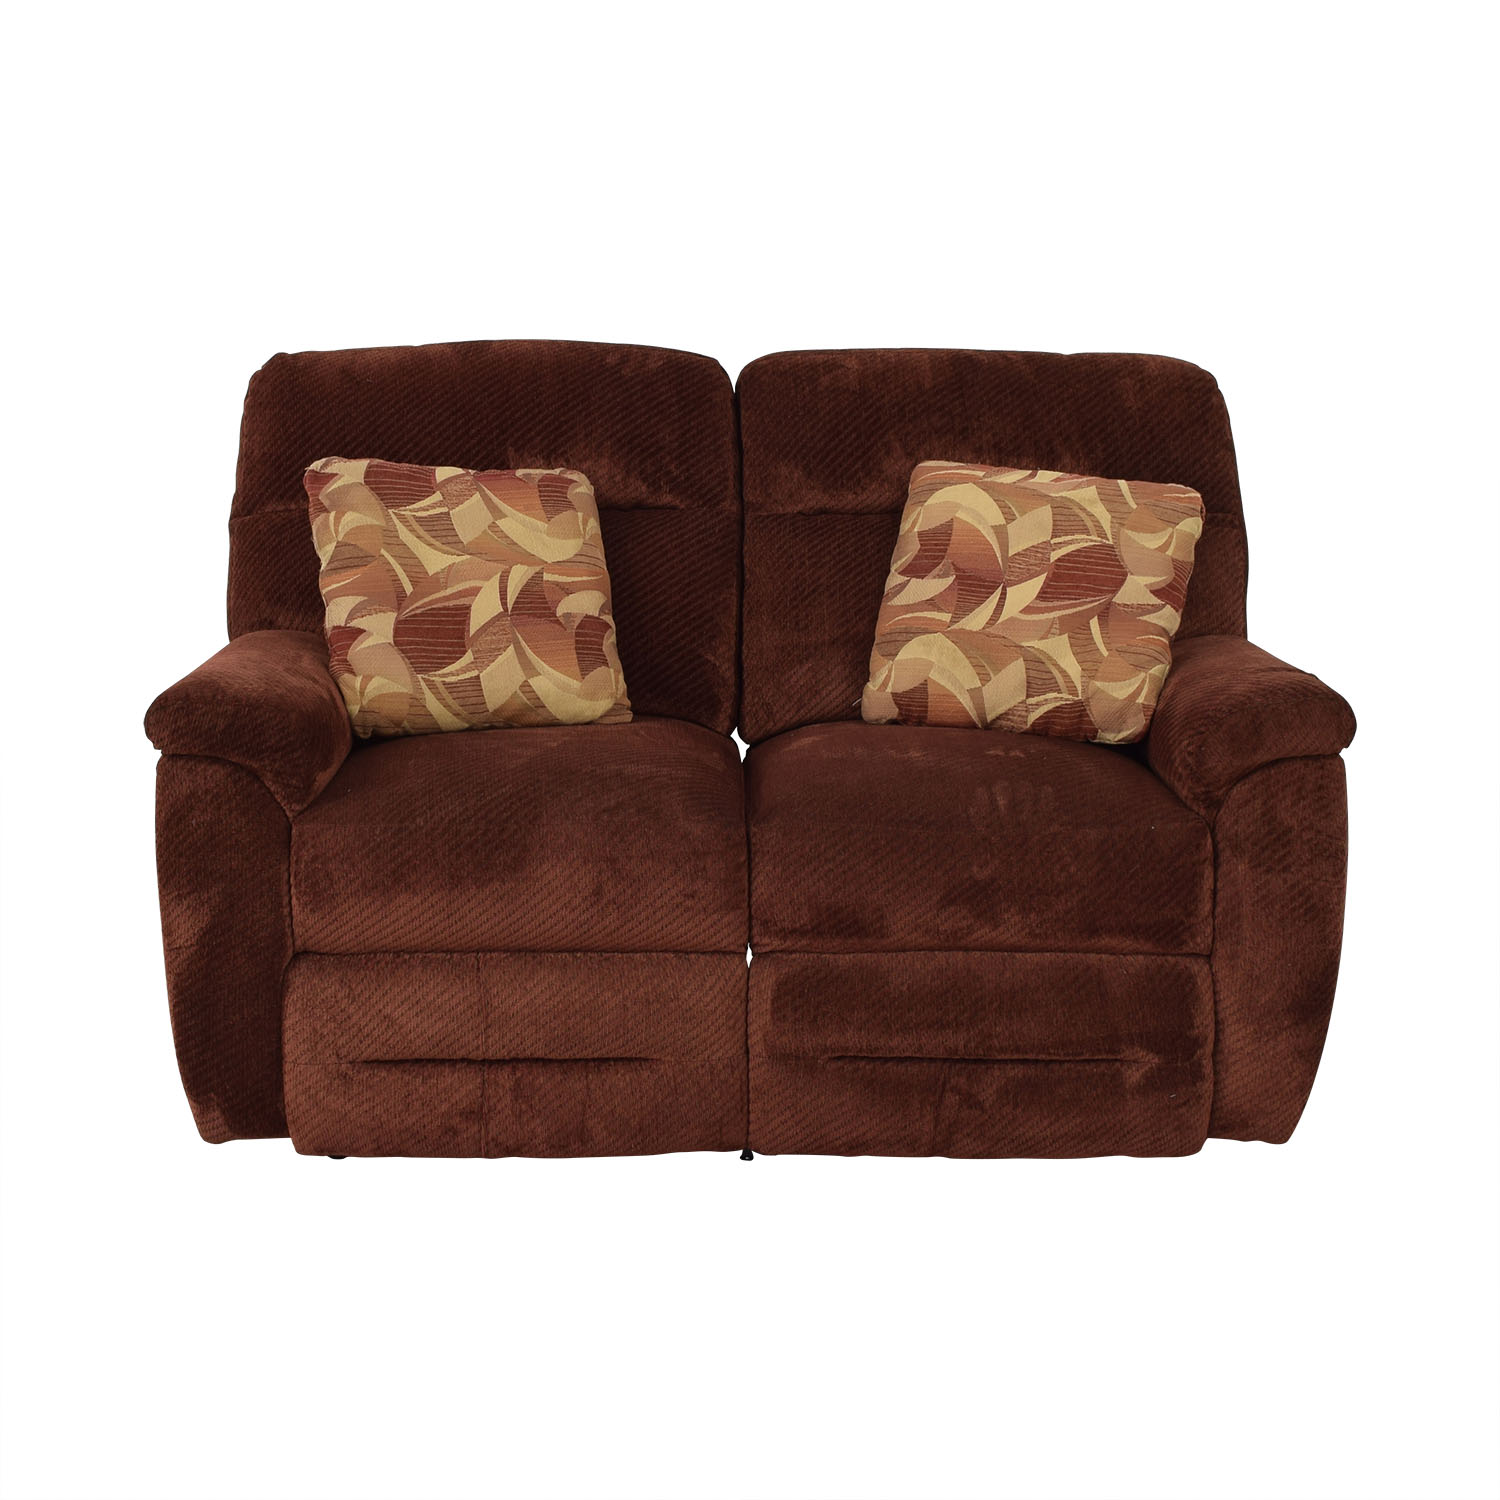 La-Z-Boy La-Z-Boy Reclining Love Seat discount